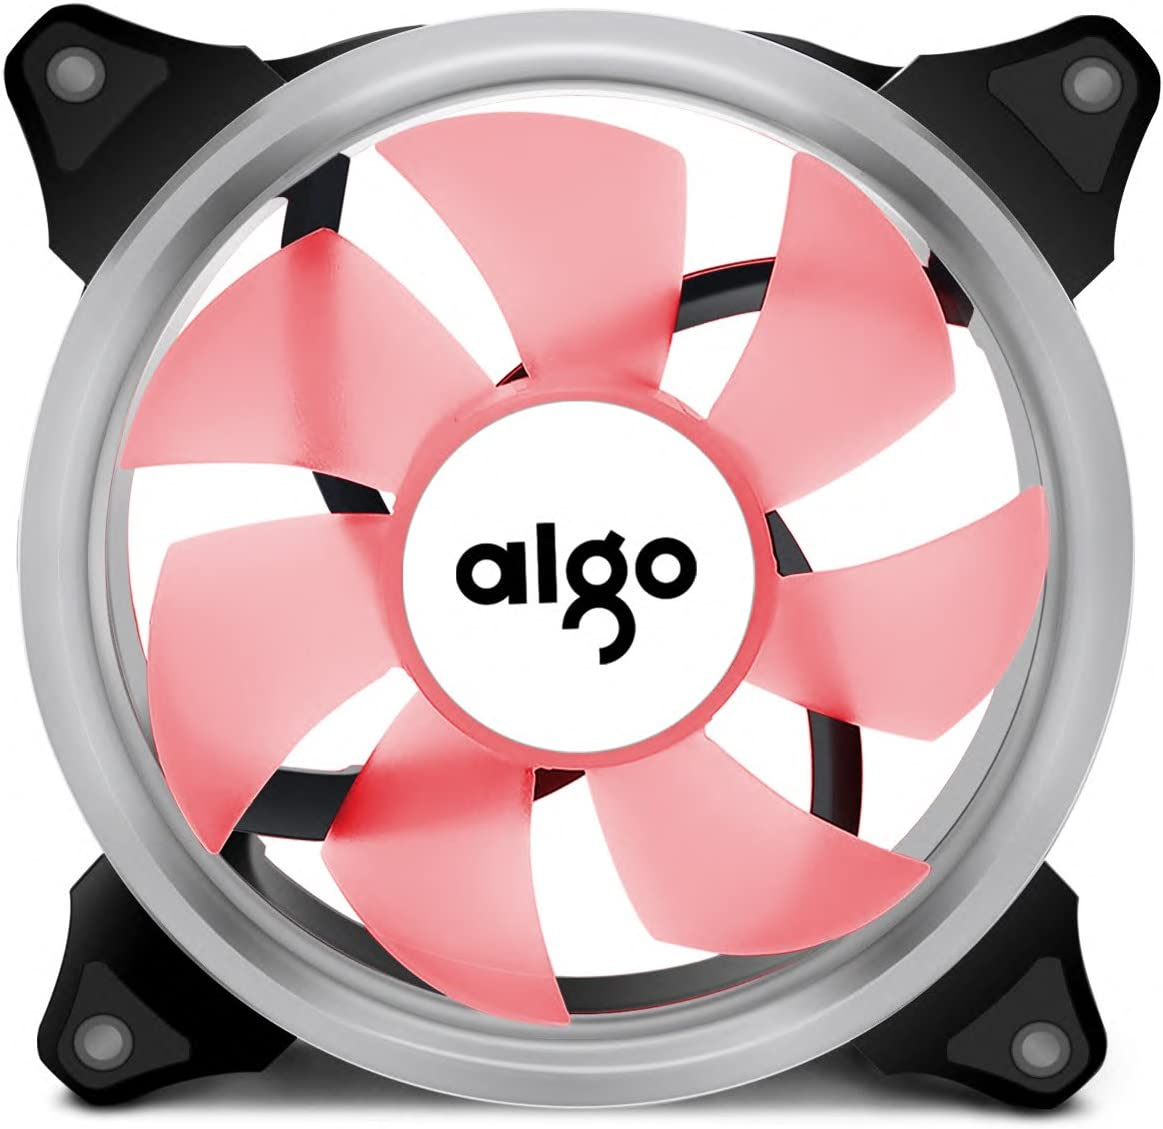 5-Pack Blue Aigo Ring LED Case Fan 140mm 14cm Quiet Edition Sleeve Bearing High Airflow Silent Cooling Fan for PC Computer Cases CPU Coolers and Radiators